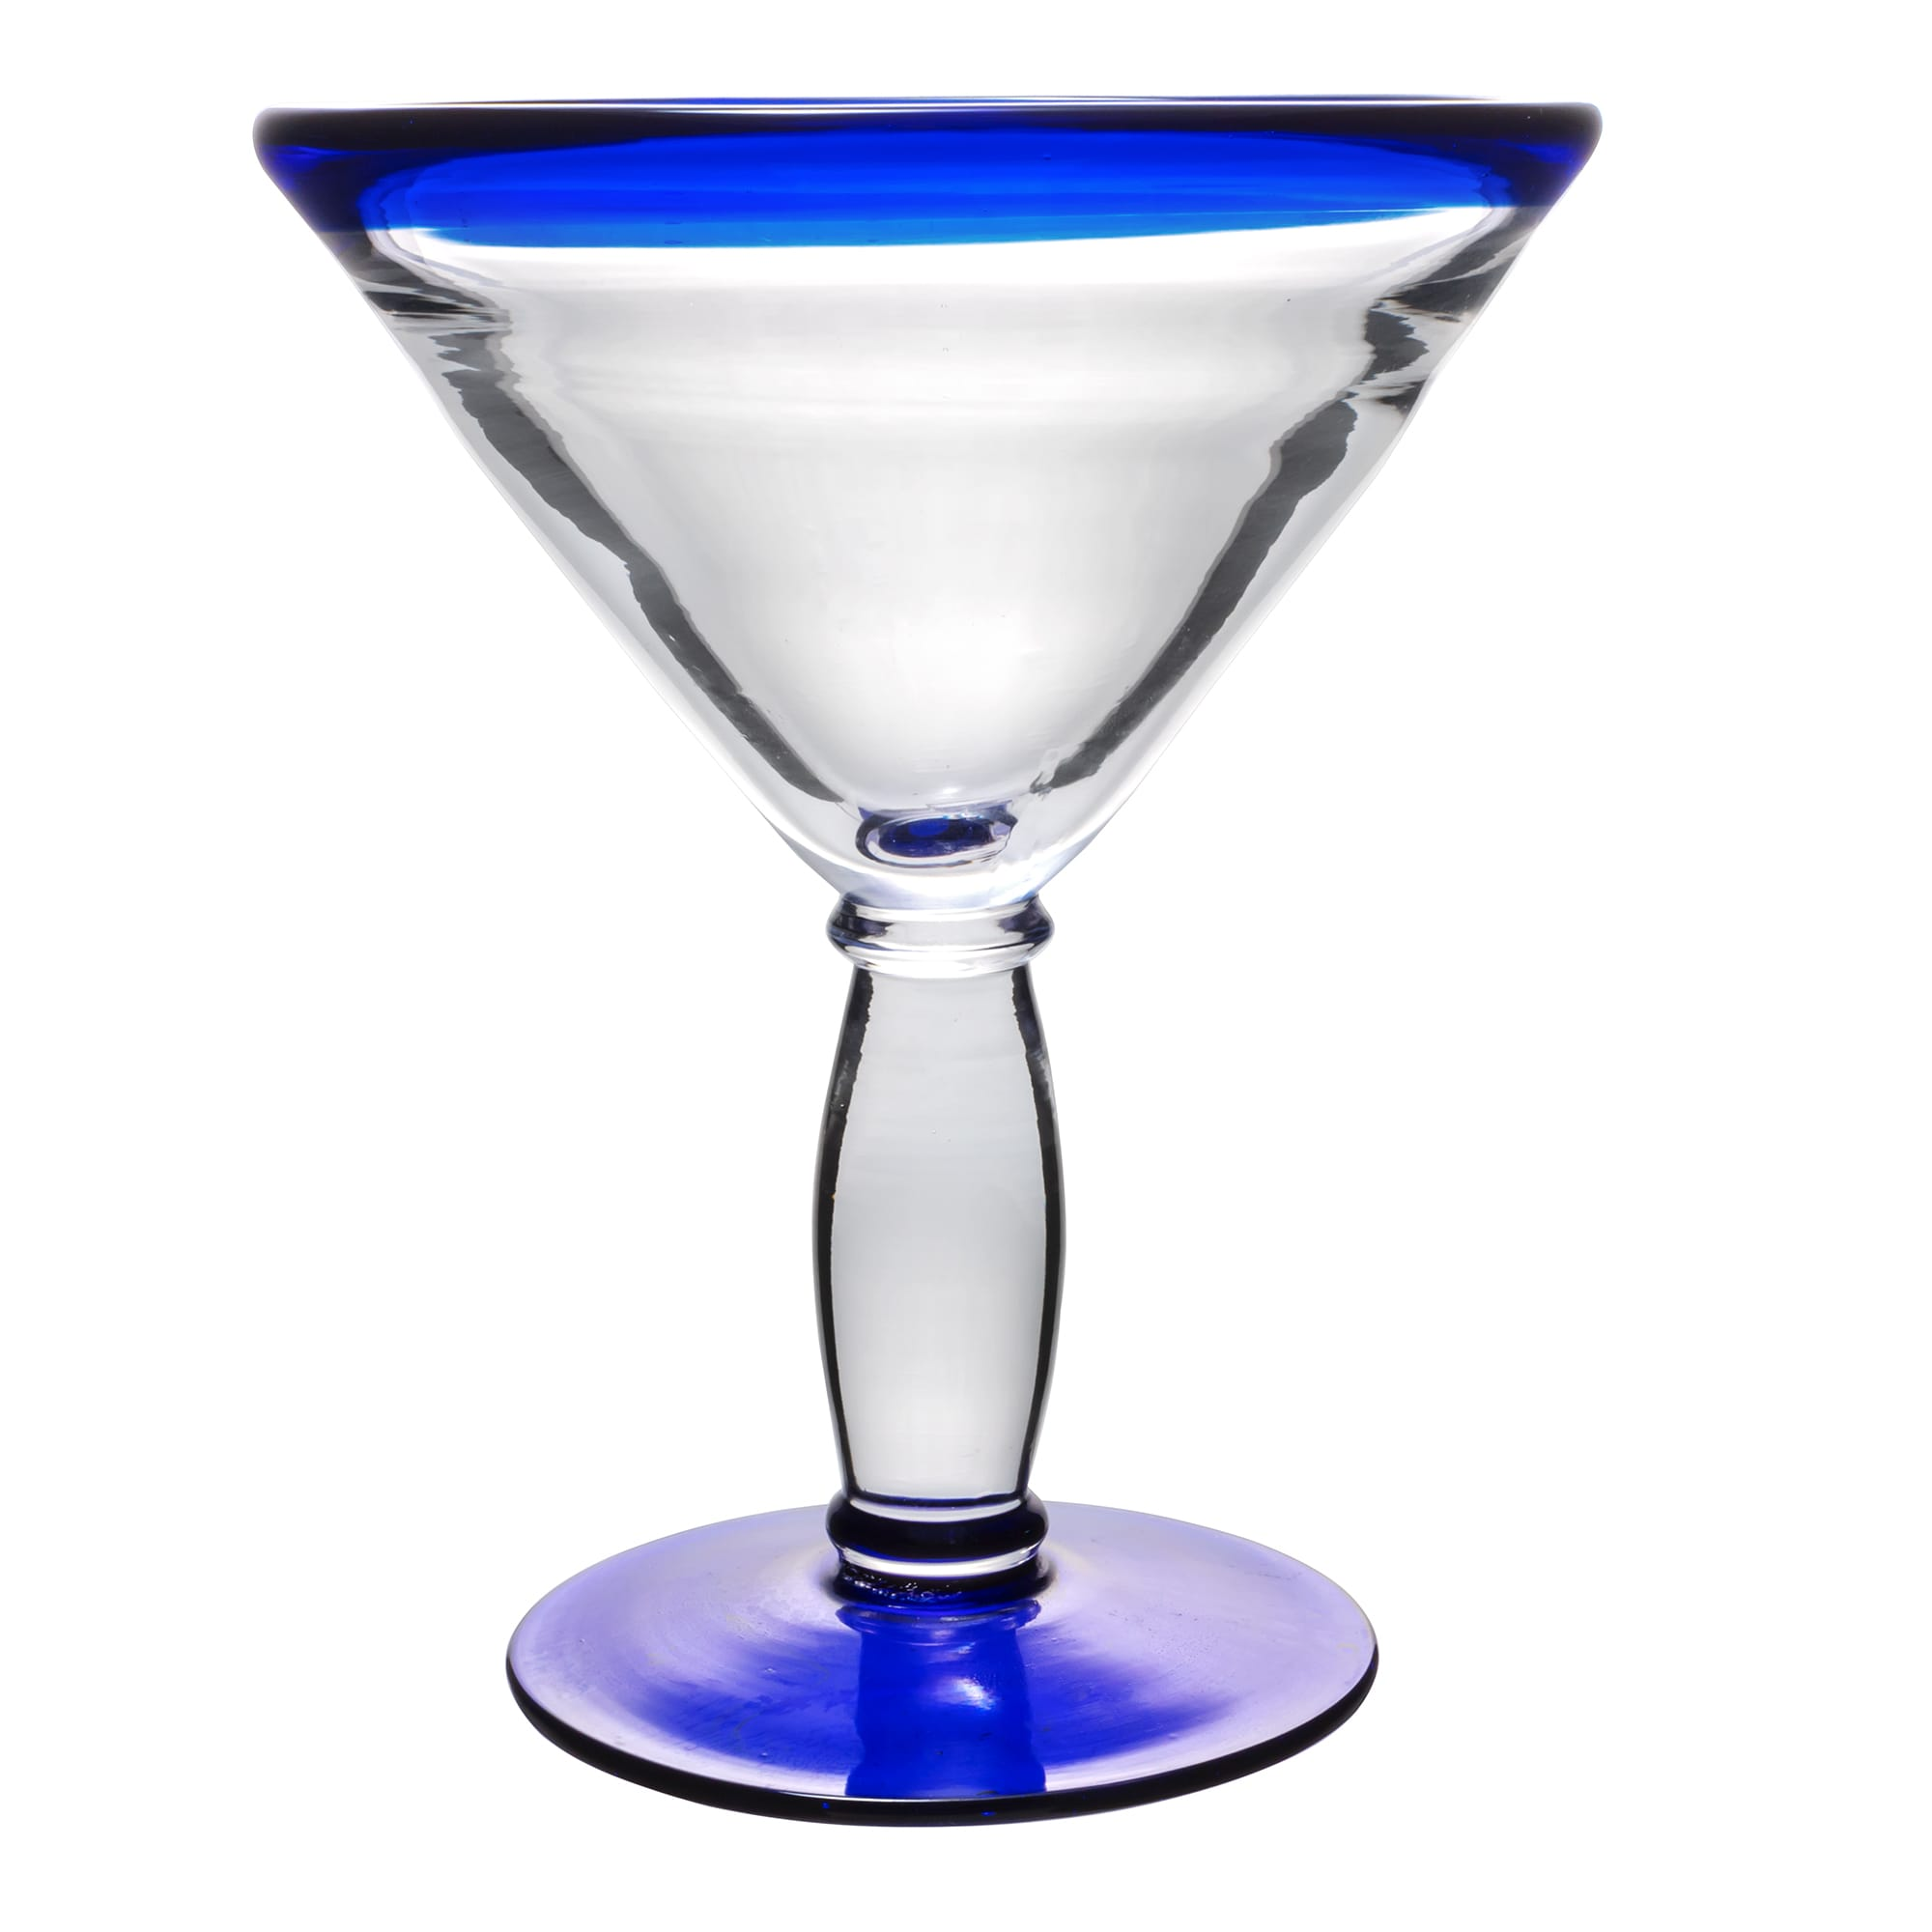 Libbey 92305 10 oz Aruba Cocktail Glass